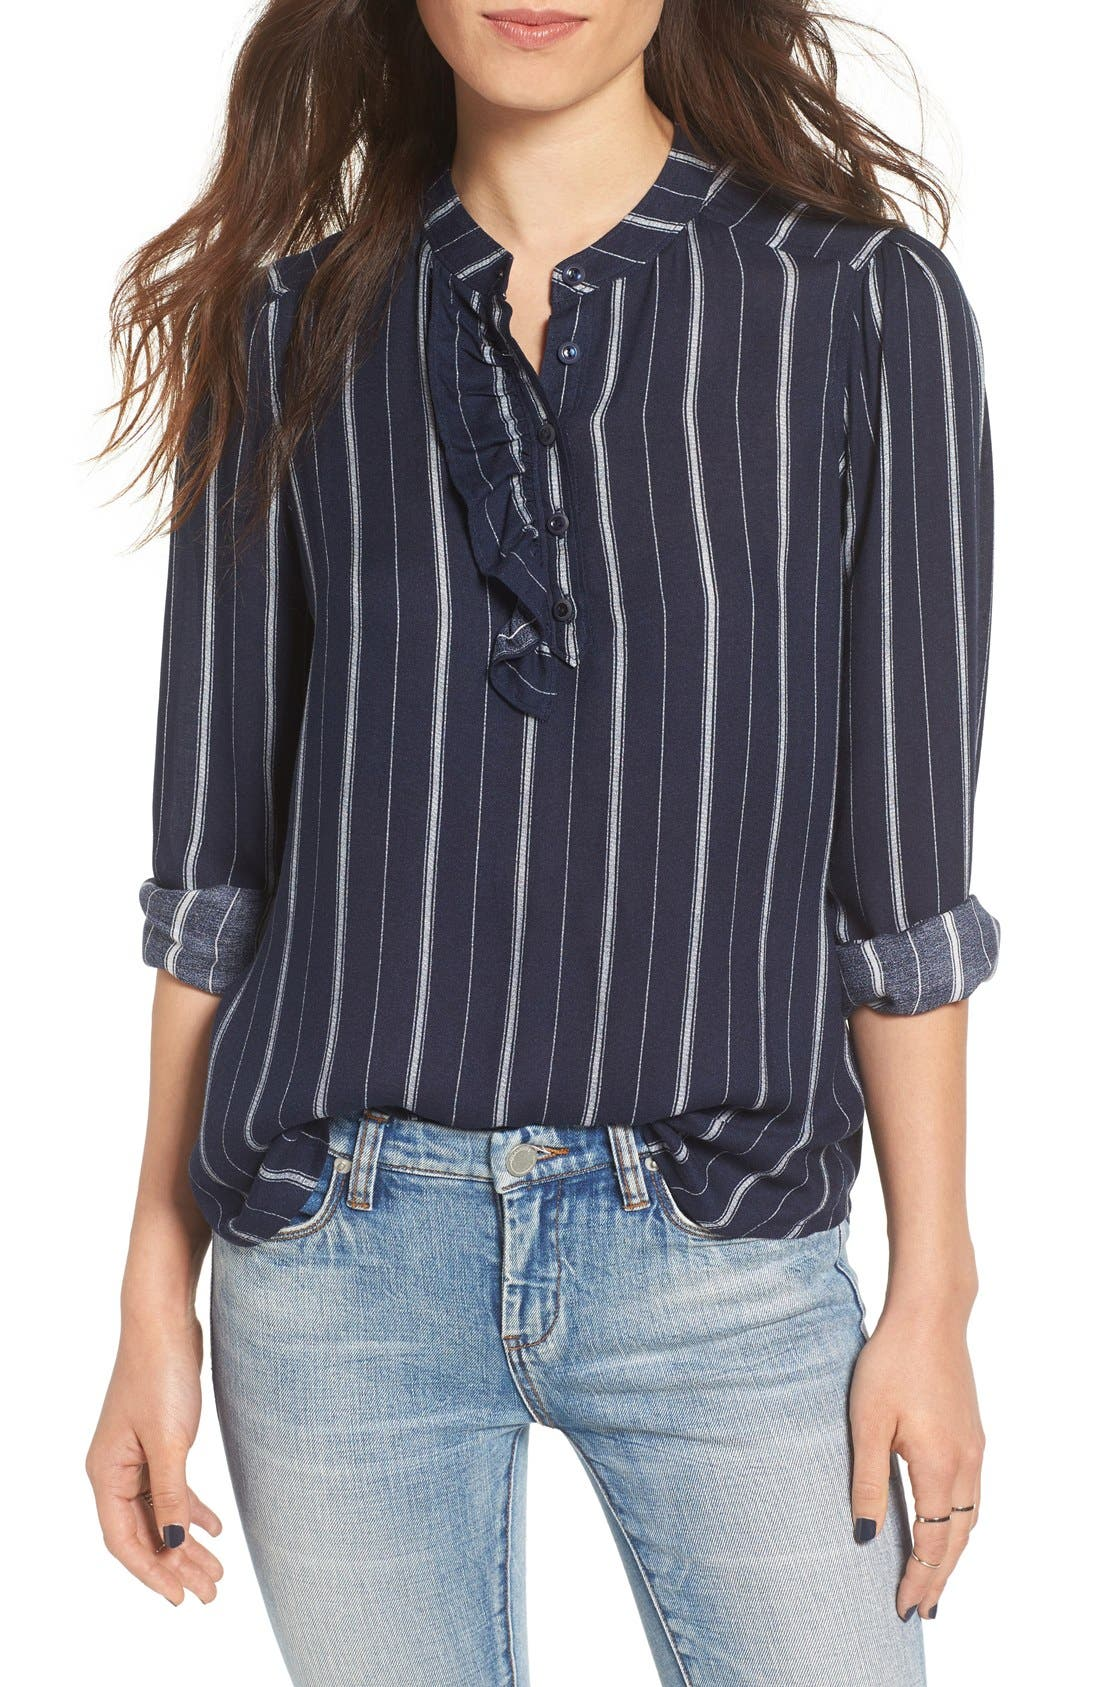 Alternate Image 1 Selected - BP. Stripe Ruffle Popover Shirt